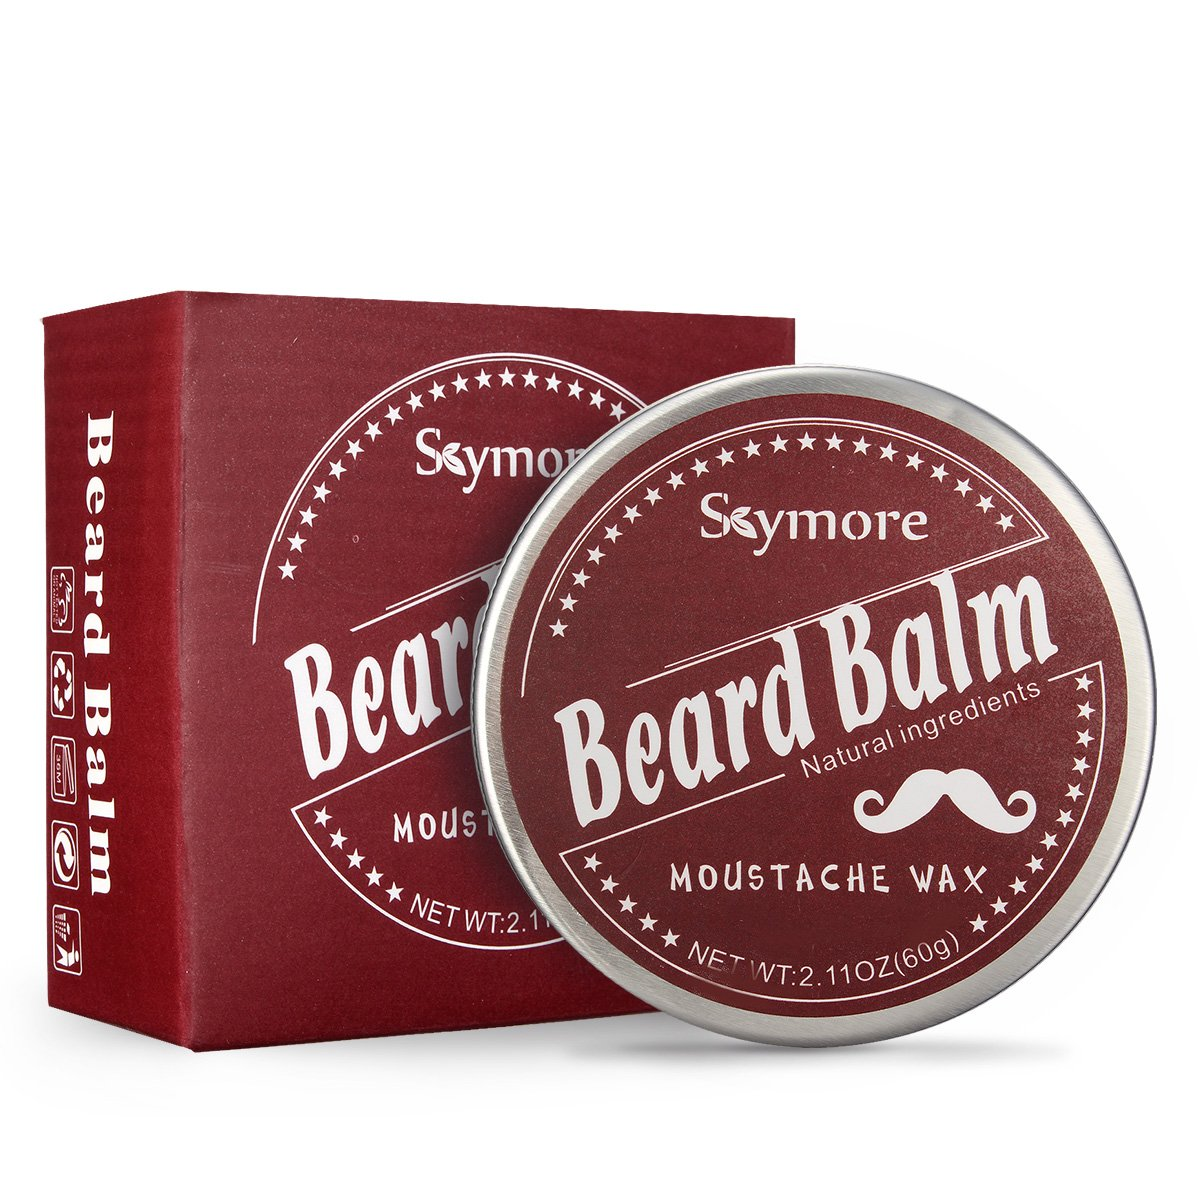 Skymore Beard Balm Natural, Cream Beard Care, Moisturizer Growth Mustaches, Leave-In Conditioner & Softener For Men, Best Facial Hair Grooming, All Hair Types -Perfect Gift For Father's Day